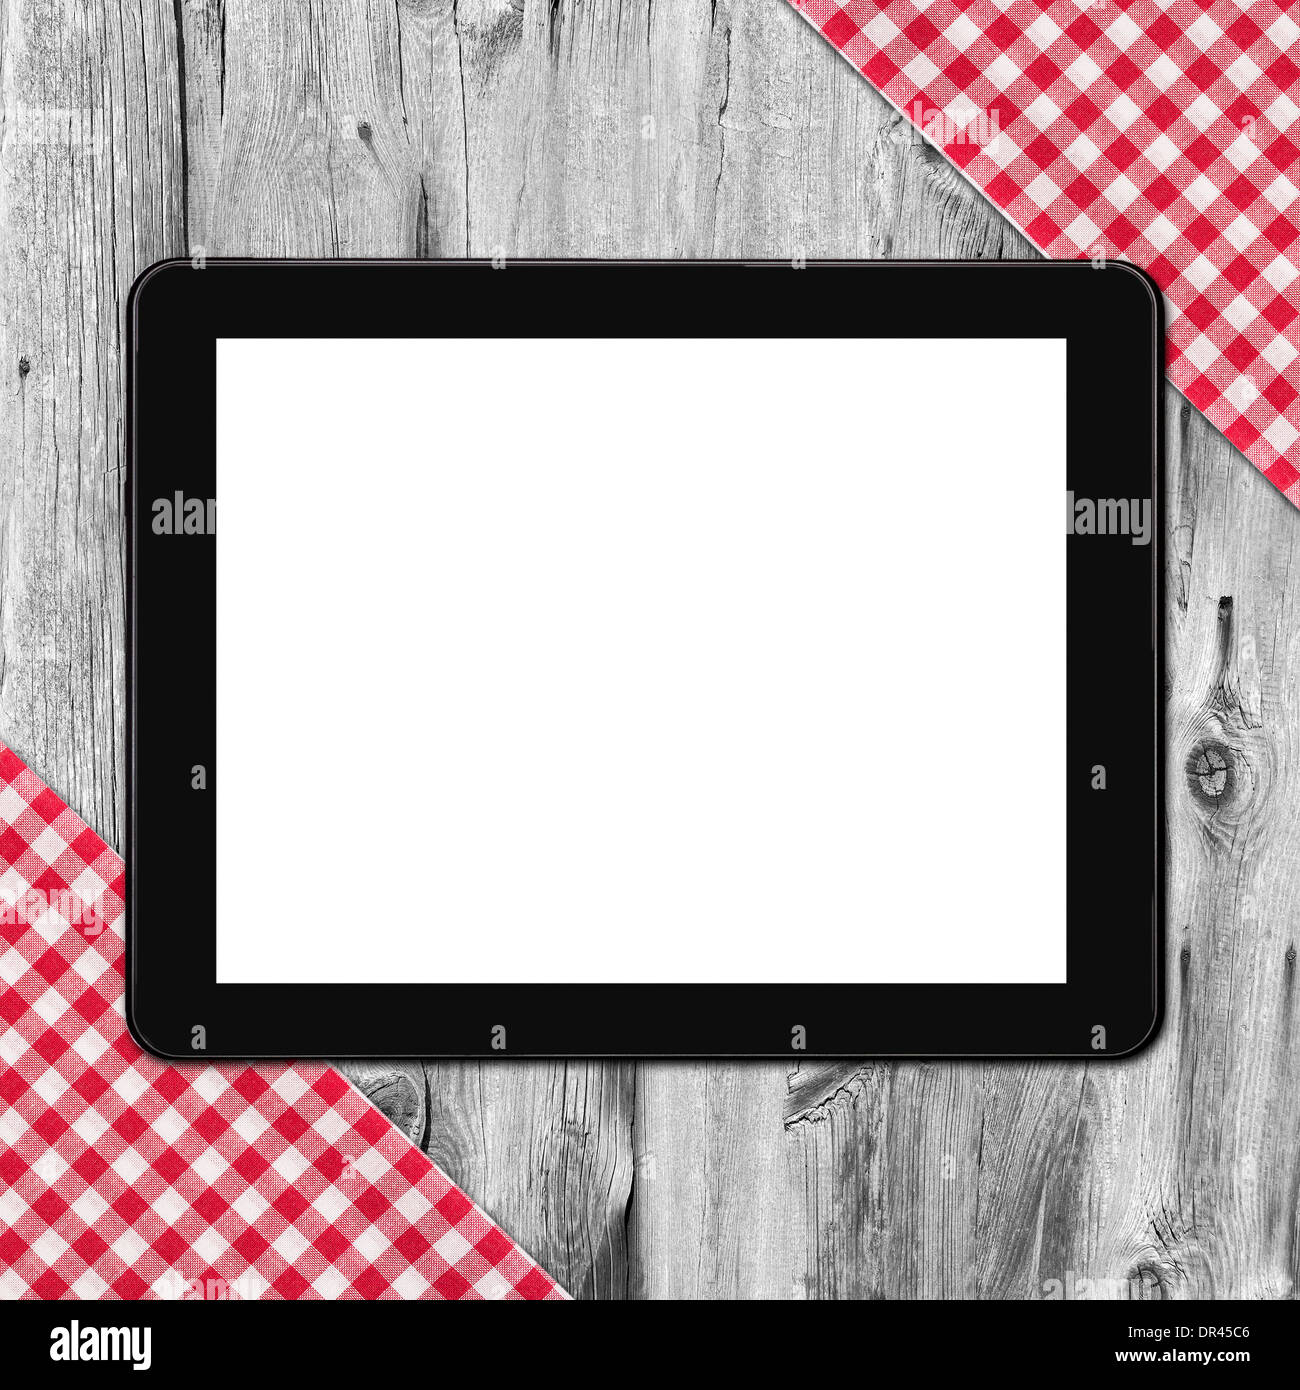 Tablet, tablecloth textile texture on wooden table background - Stock Image